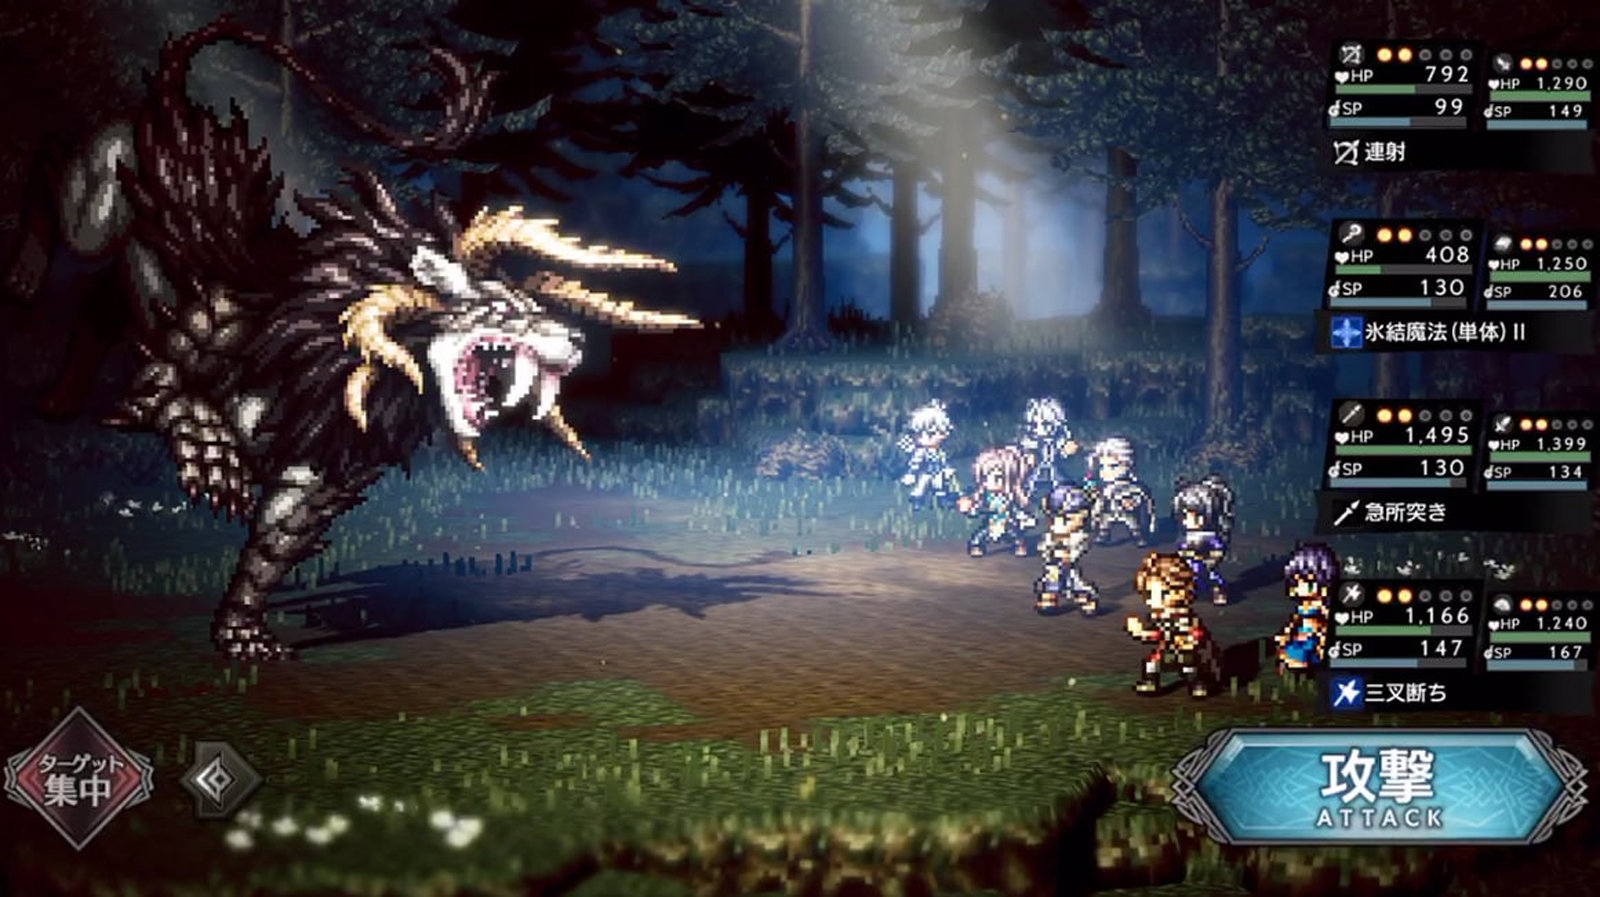 Switch RPG 'Octopath Traveler' is coming to Android and iOS | DeviceDaily.com